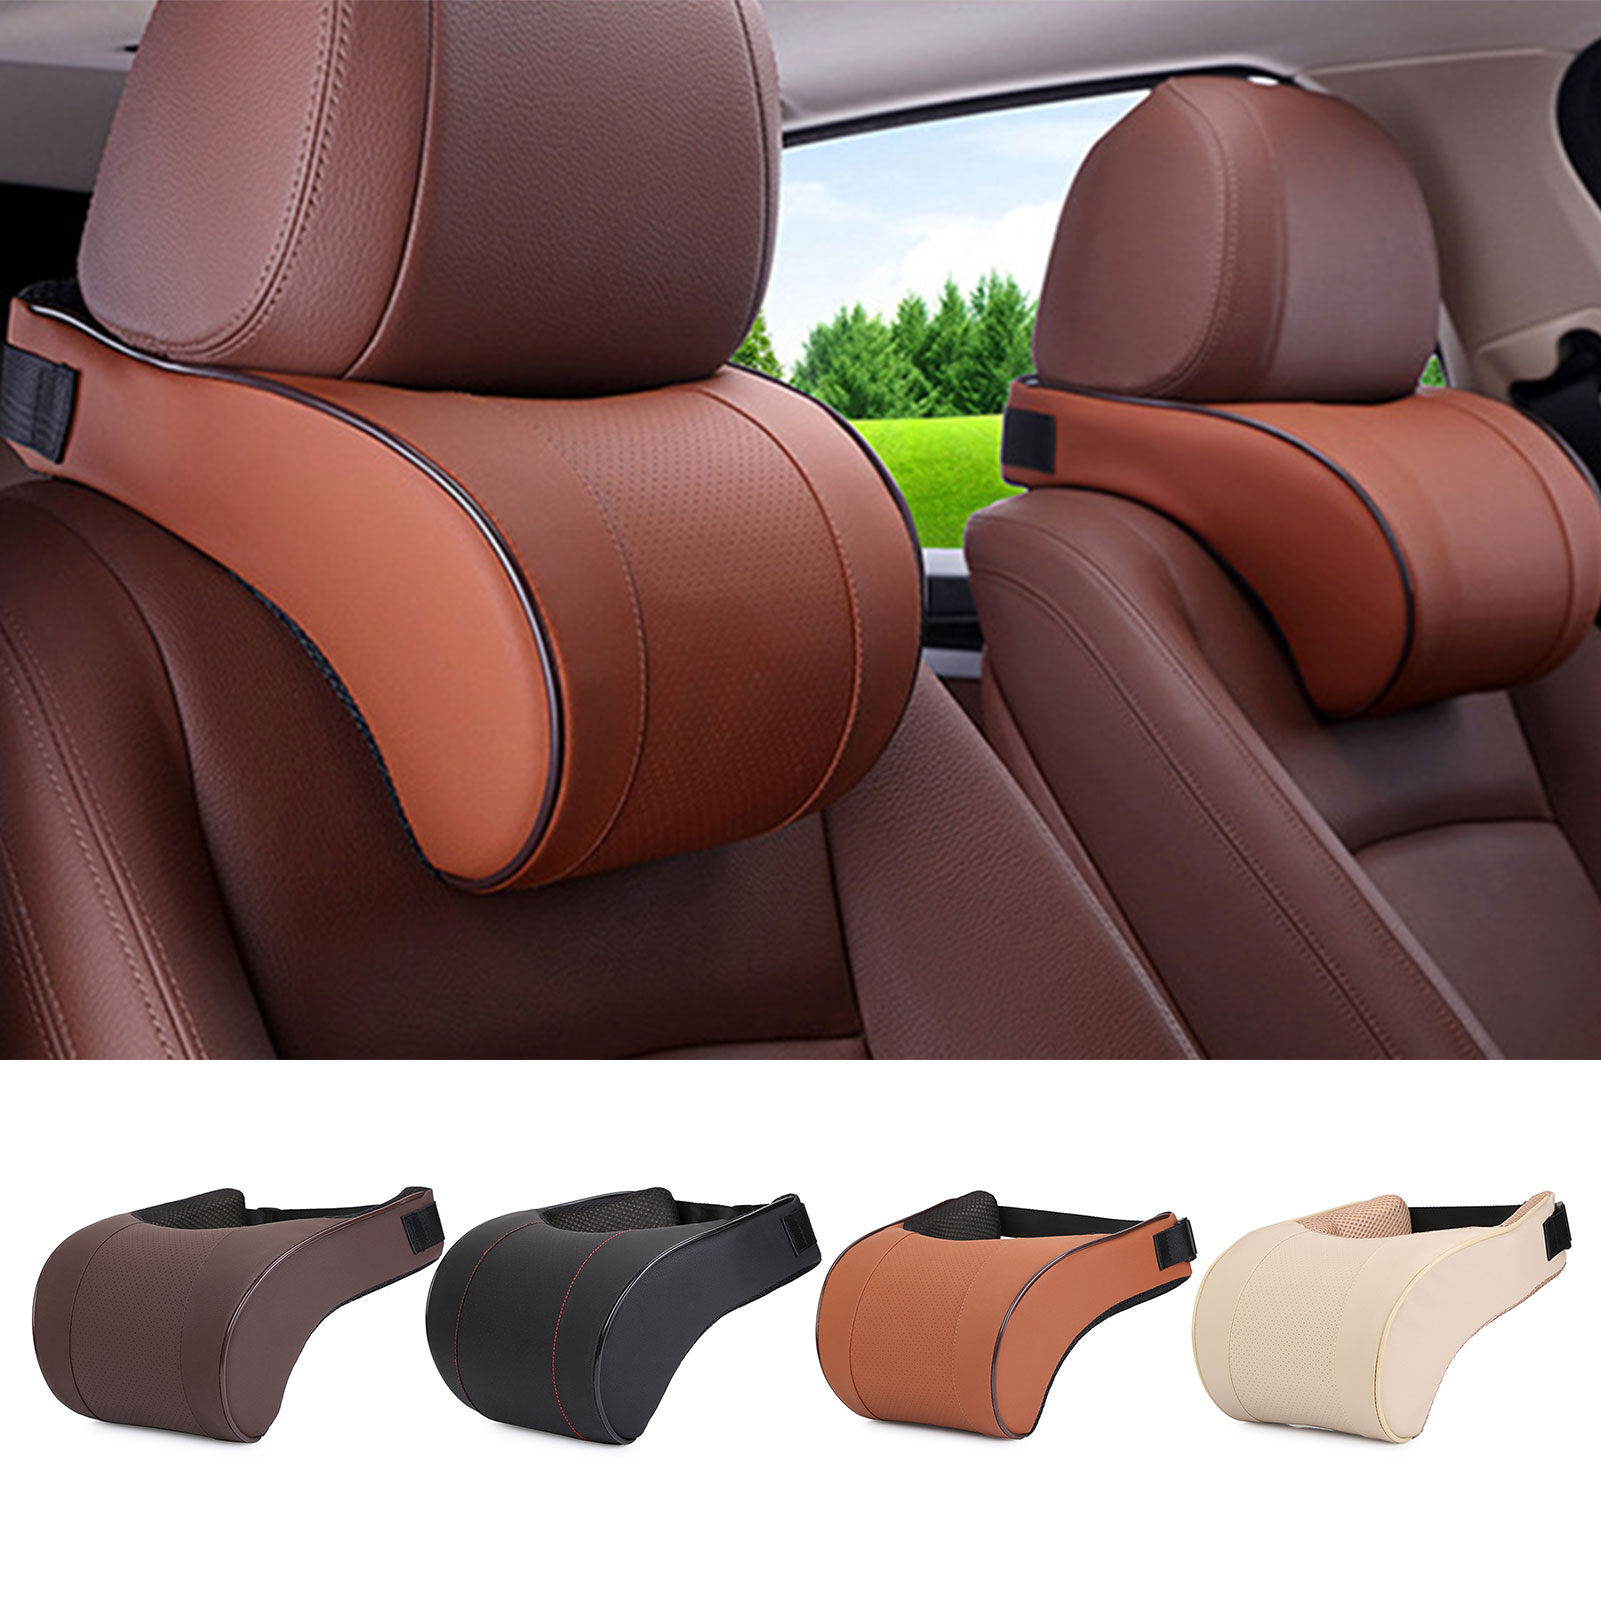 Memory Foam Adjustment Car Headrest Pillow PU Leather Auto Neck Rest Lumbar Pillows Travel Car Seat Headrest Cushion